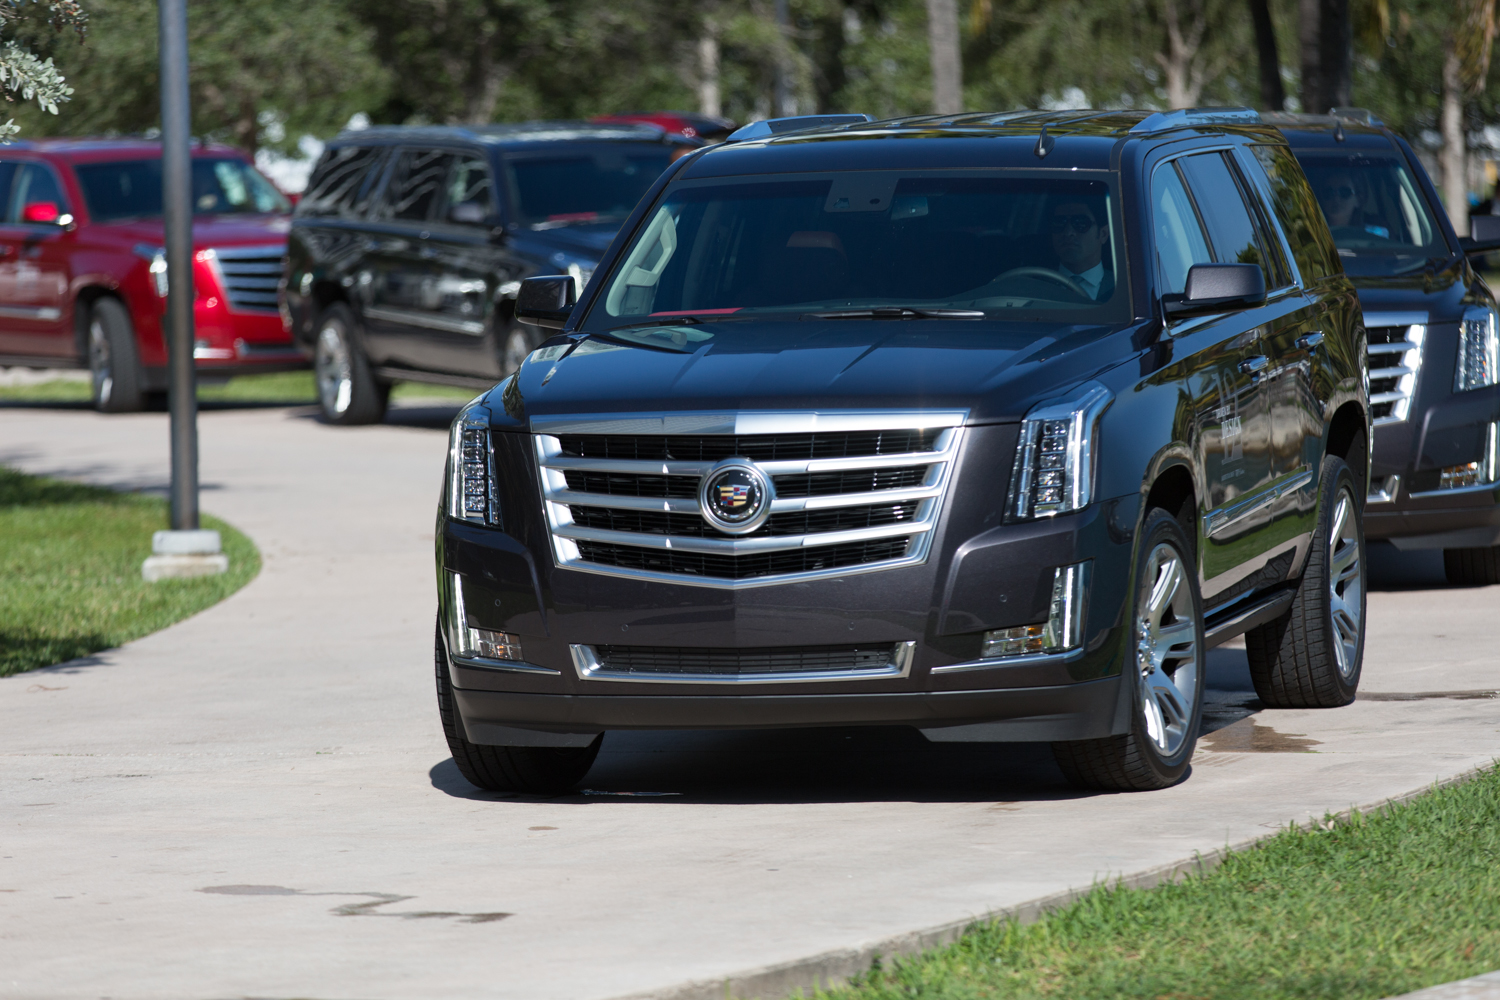 american north and of in ocean luxury ft at fl with cadillac miami beach serving aventura